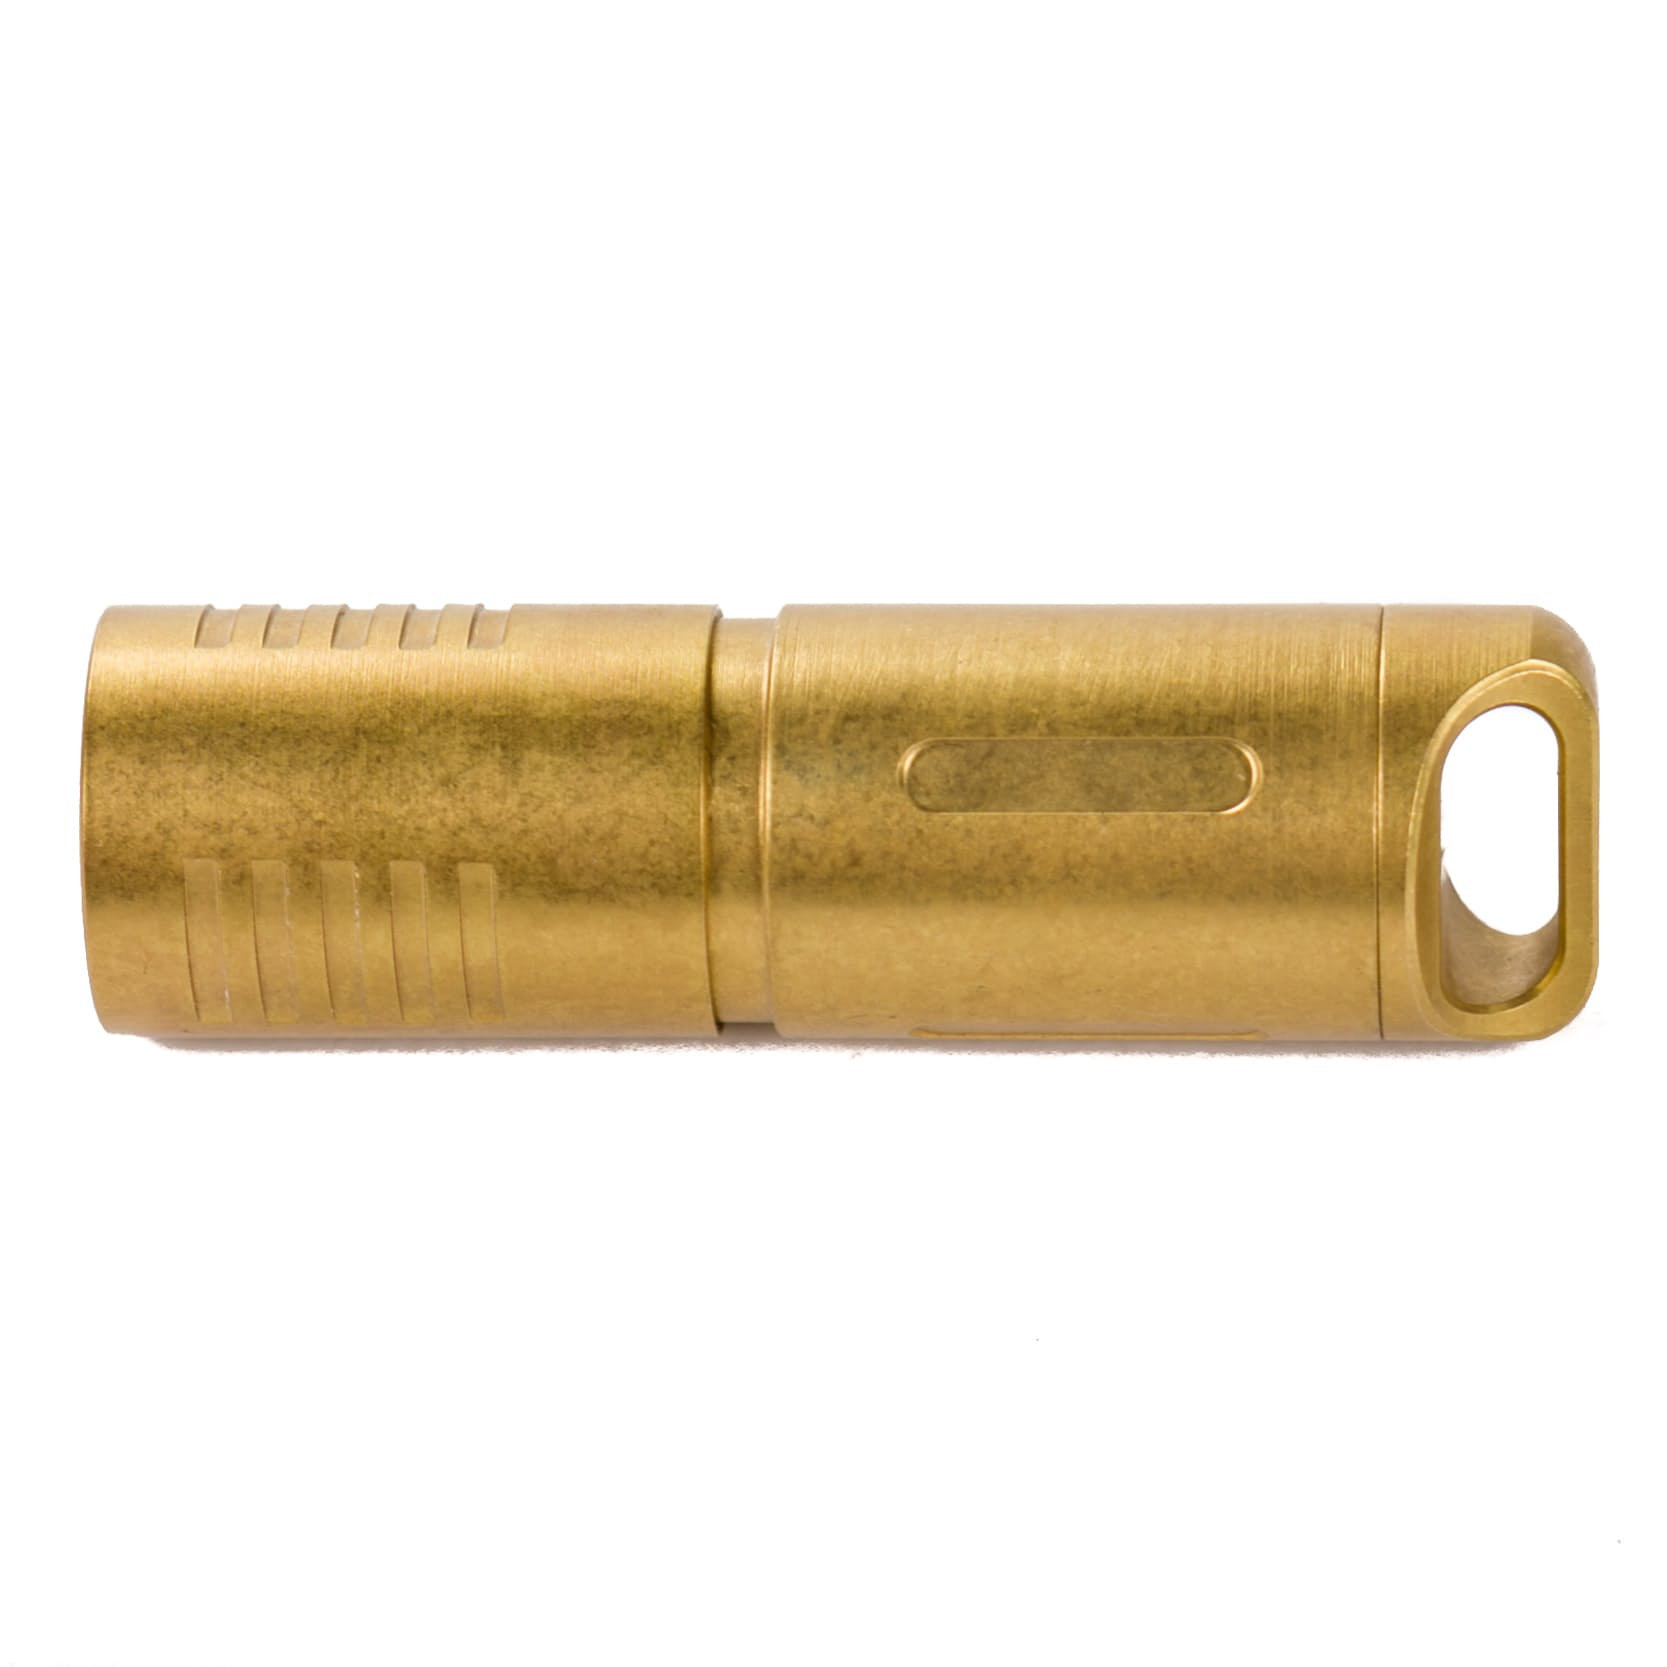 vCBfUWpE8M_mecarmy_brass_edc_flashlight_